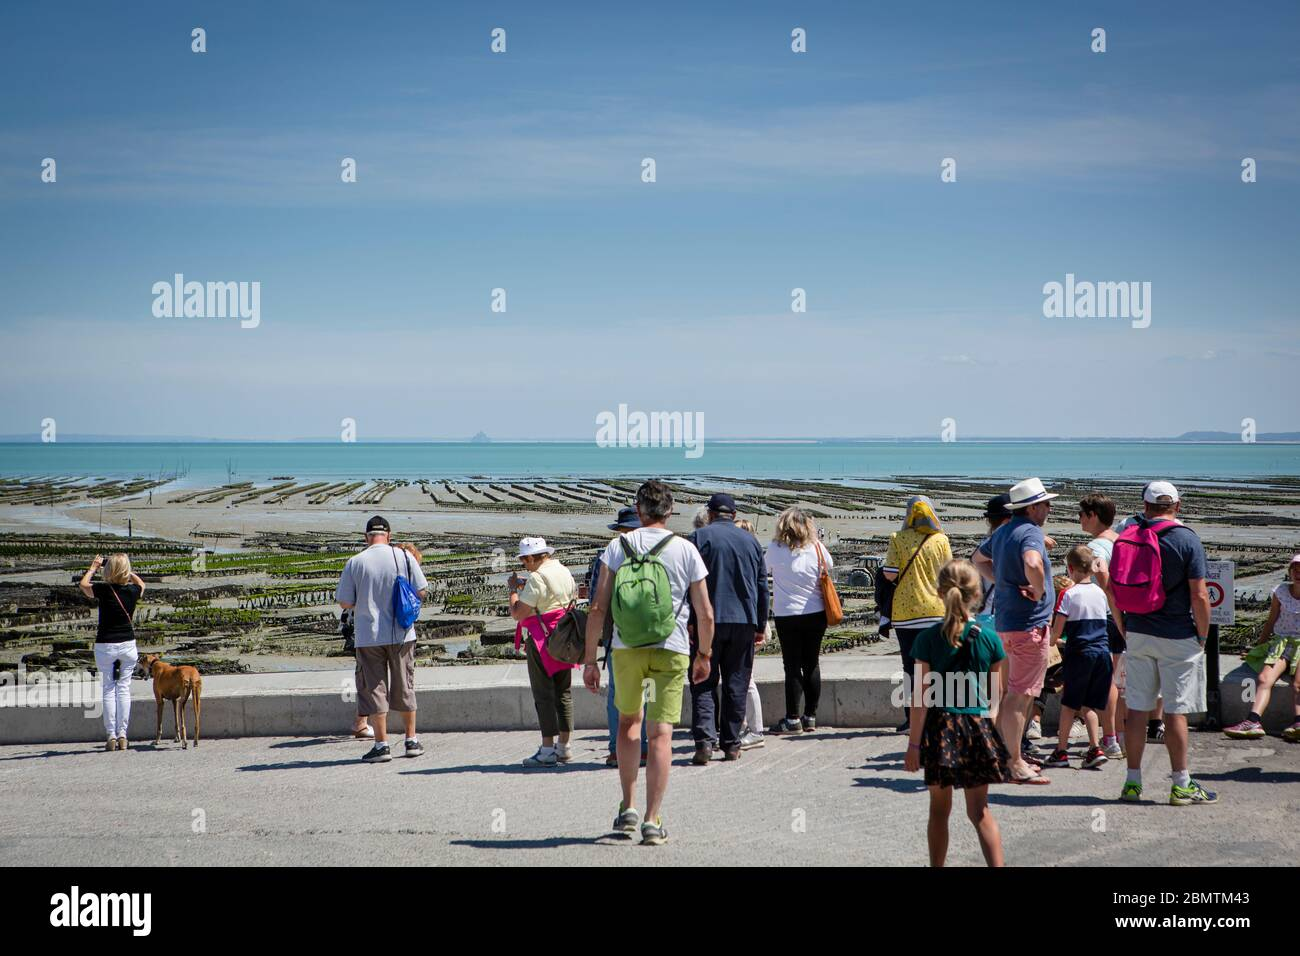 Oyster farm in low tide in the village of Cancale, Bretagne, France. People are watching from land. Stock Photo